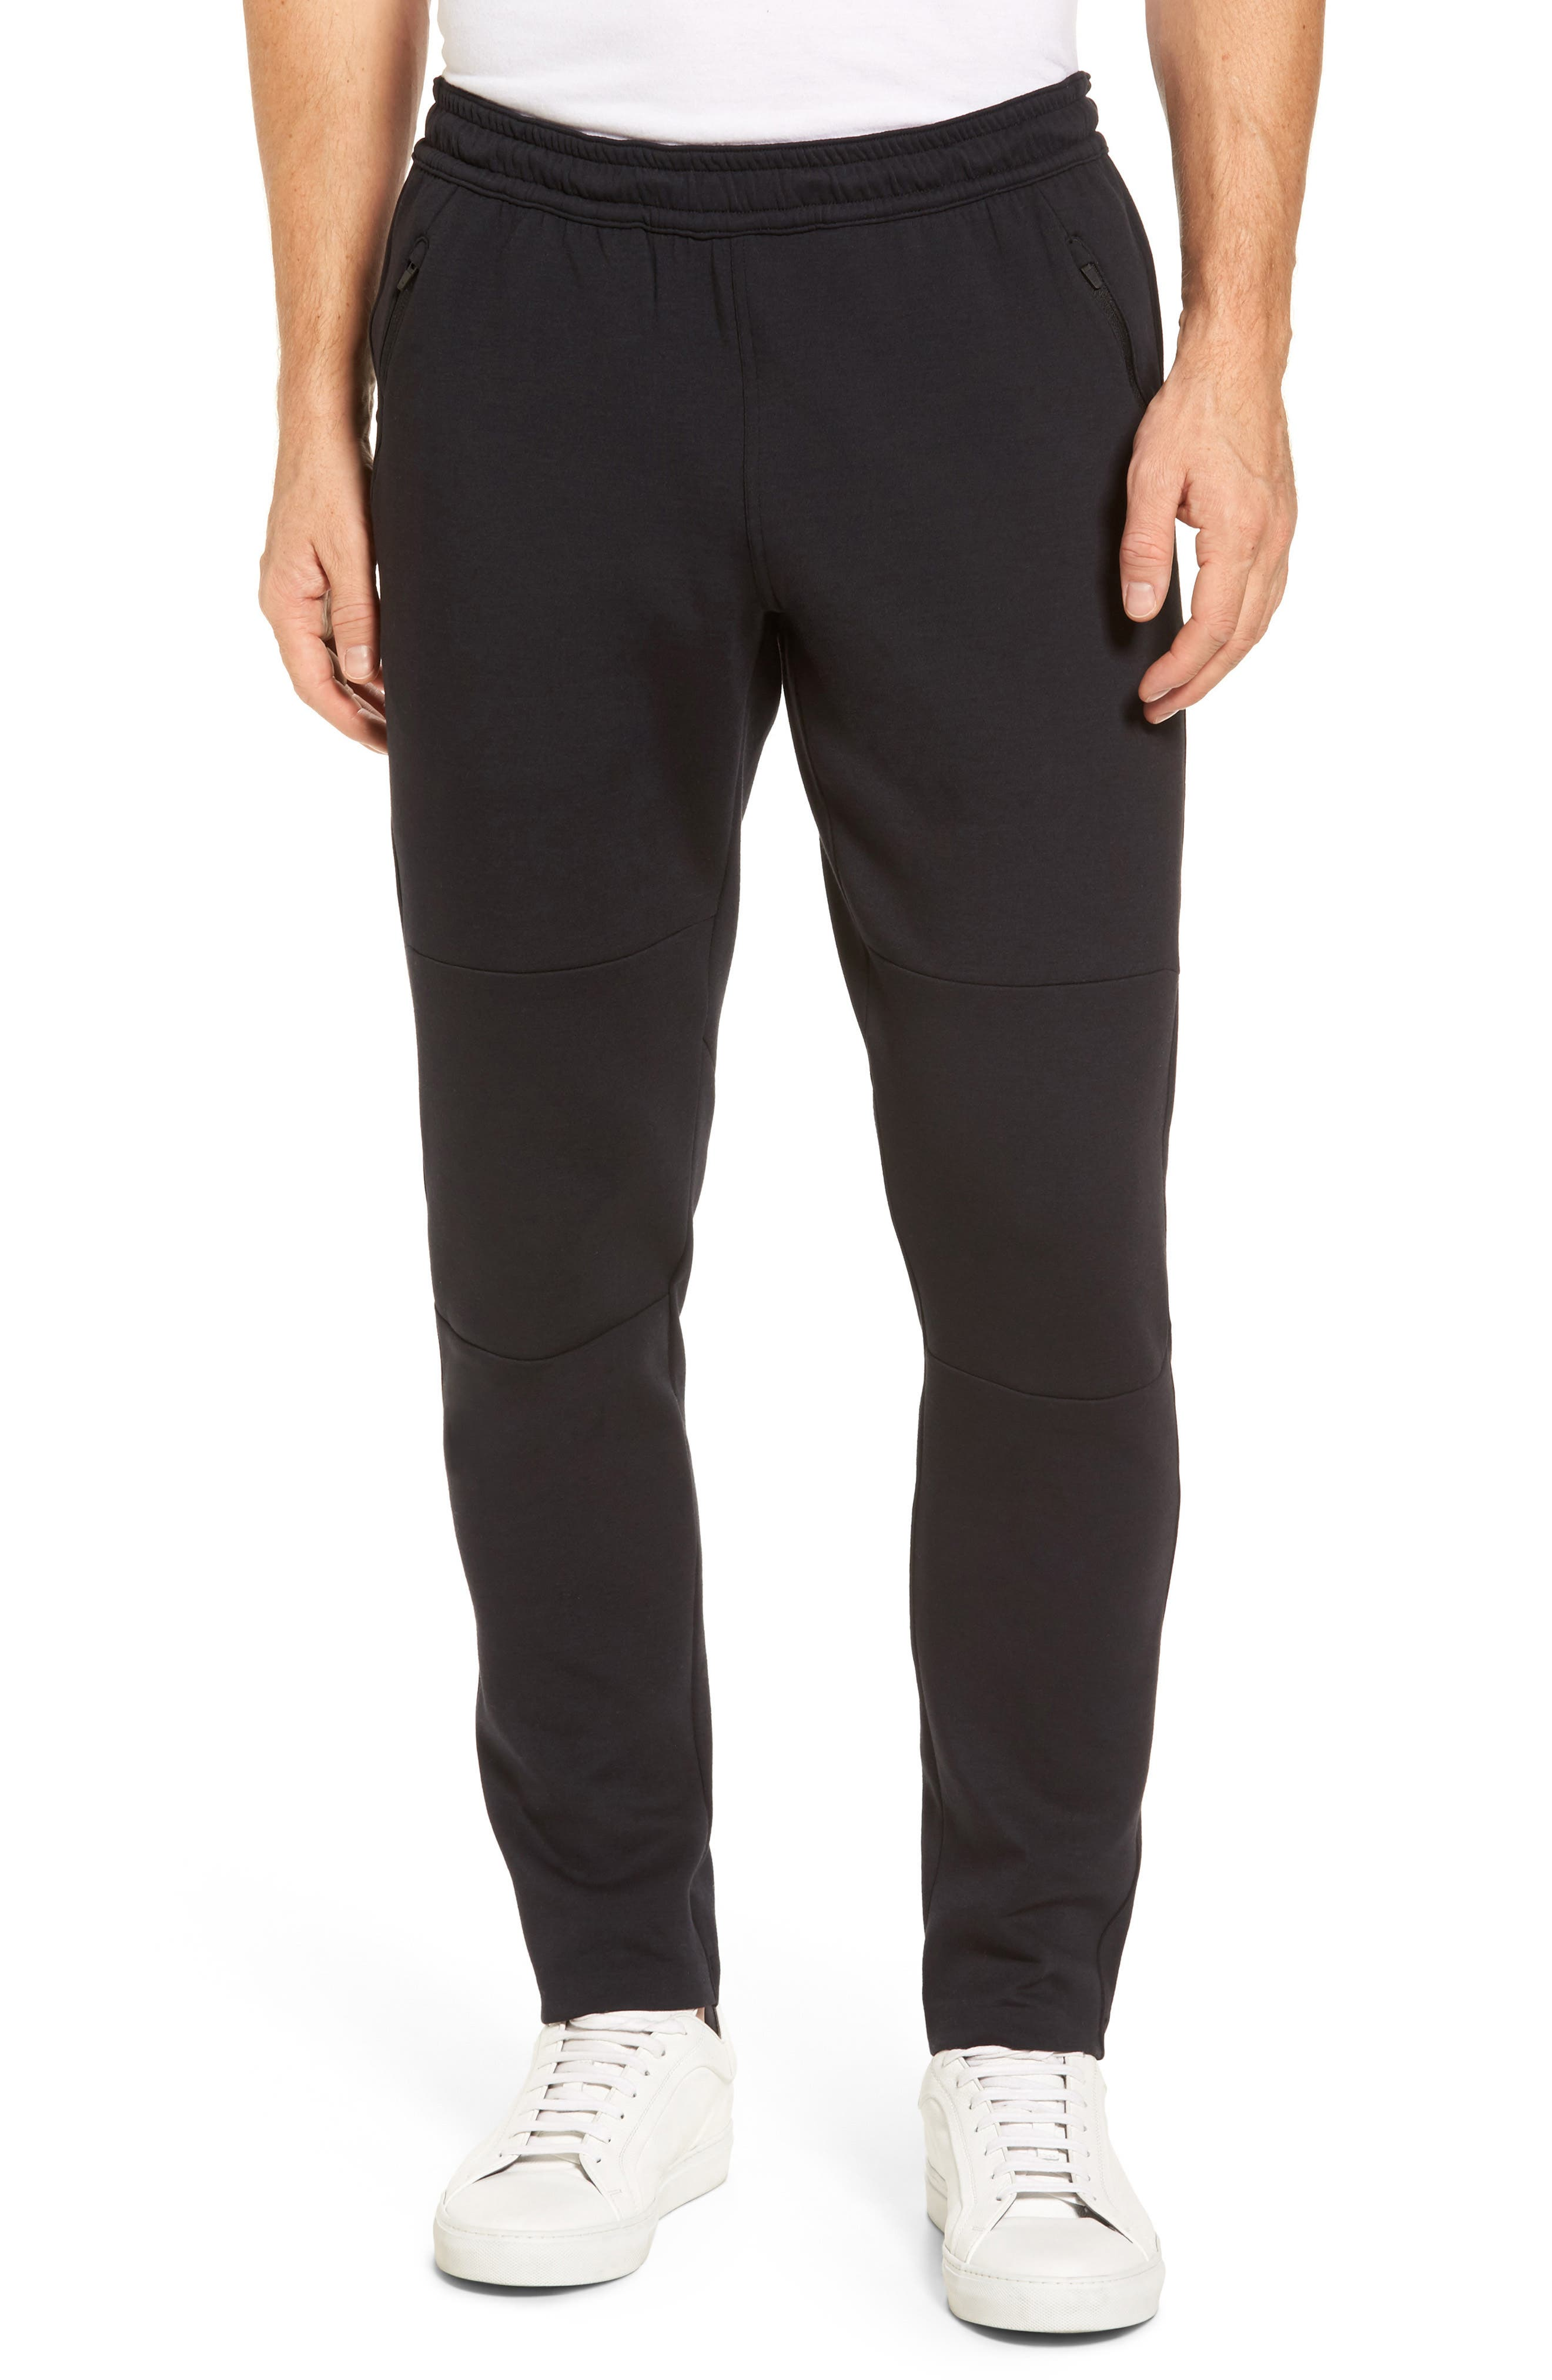 Main Image - Zella Tech Interlock Knit Pant